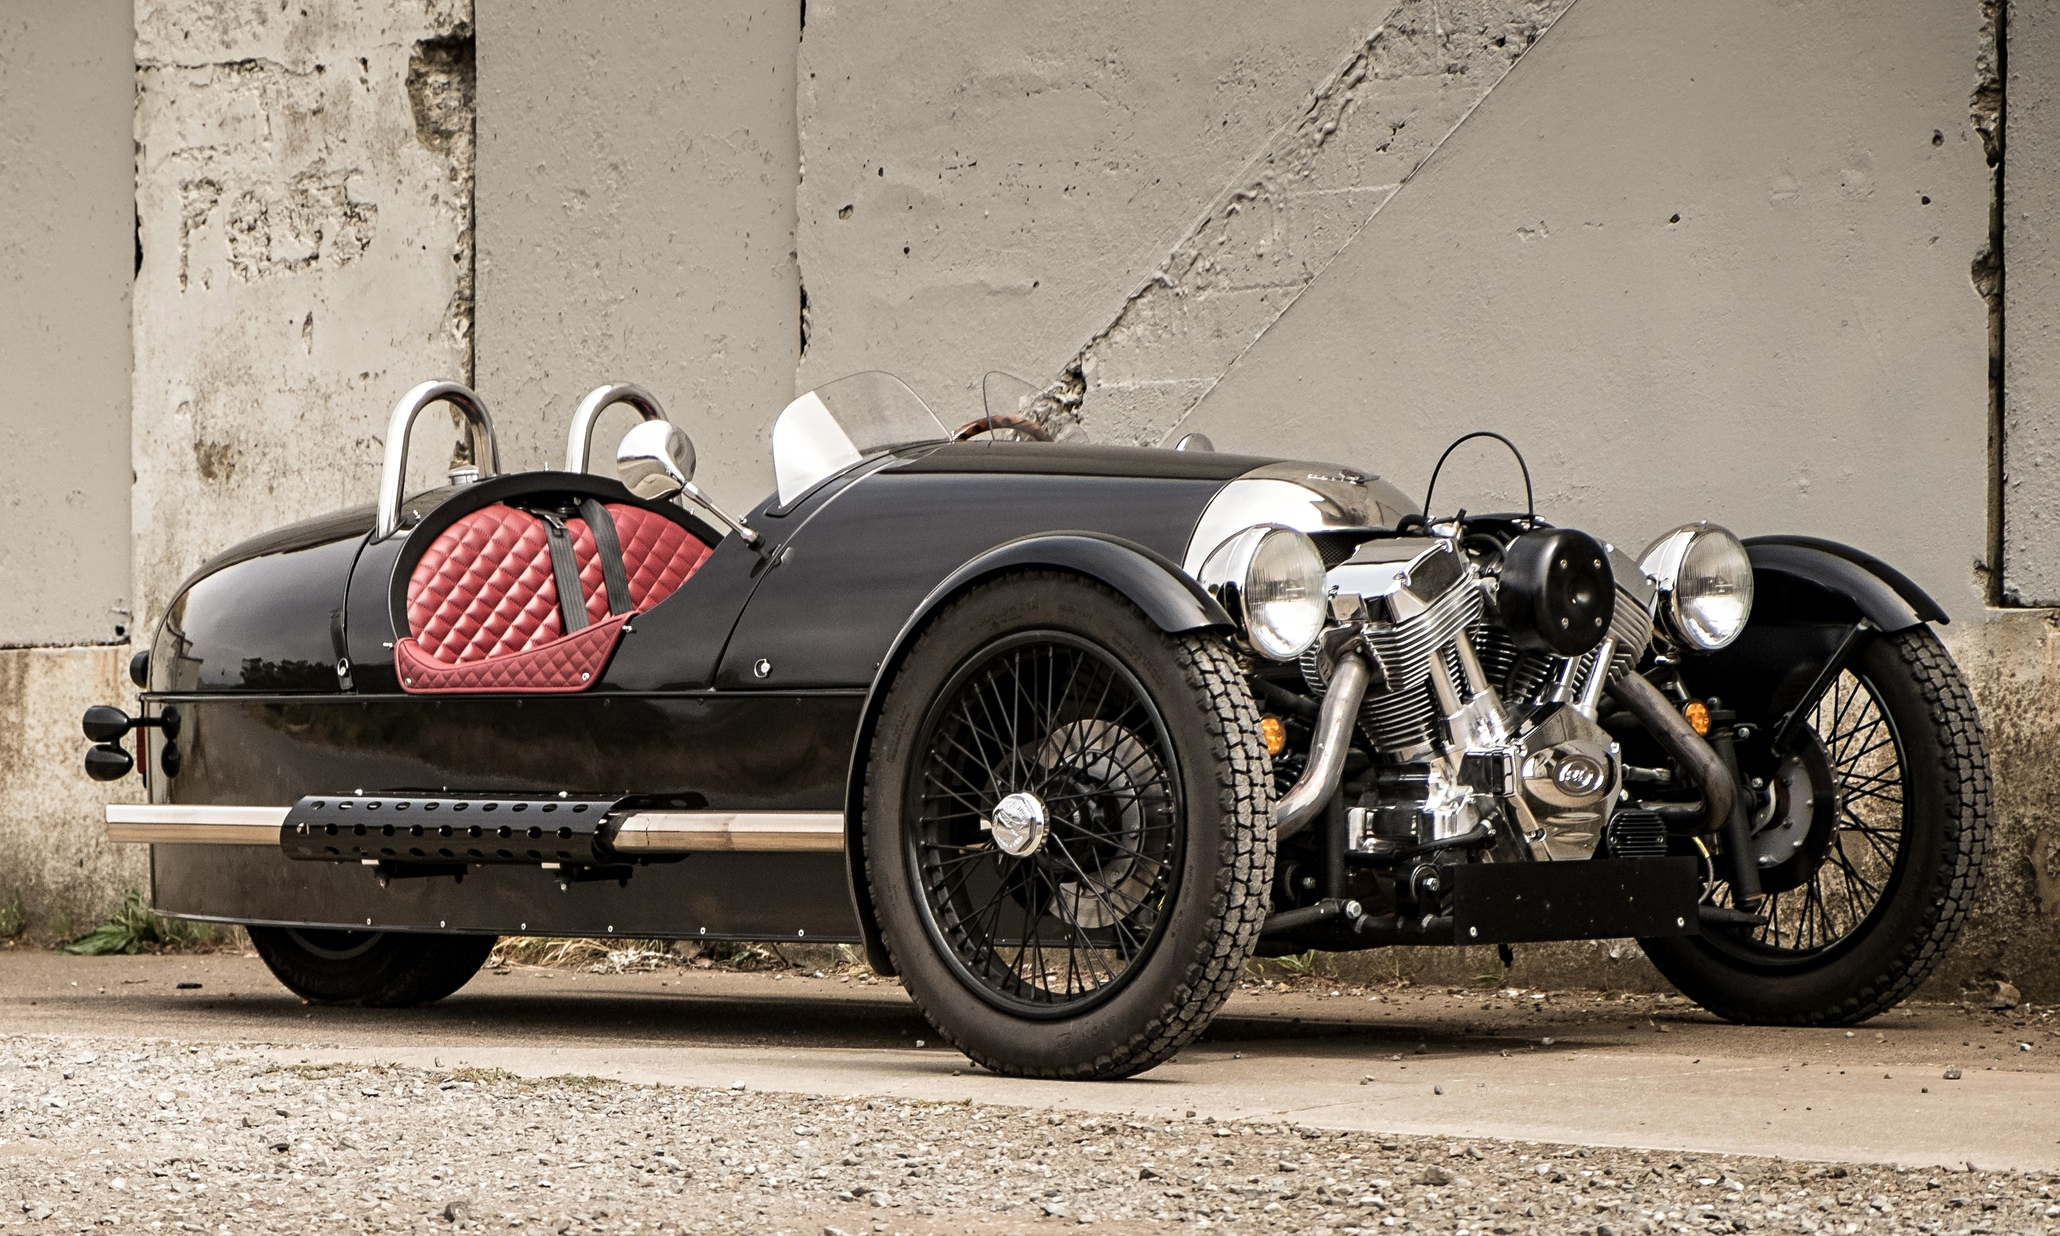 morgan three wheeler car review martin love technology the guardian. Black Bedroom Furniture Sets. Home Design Ideas